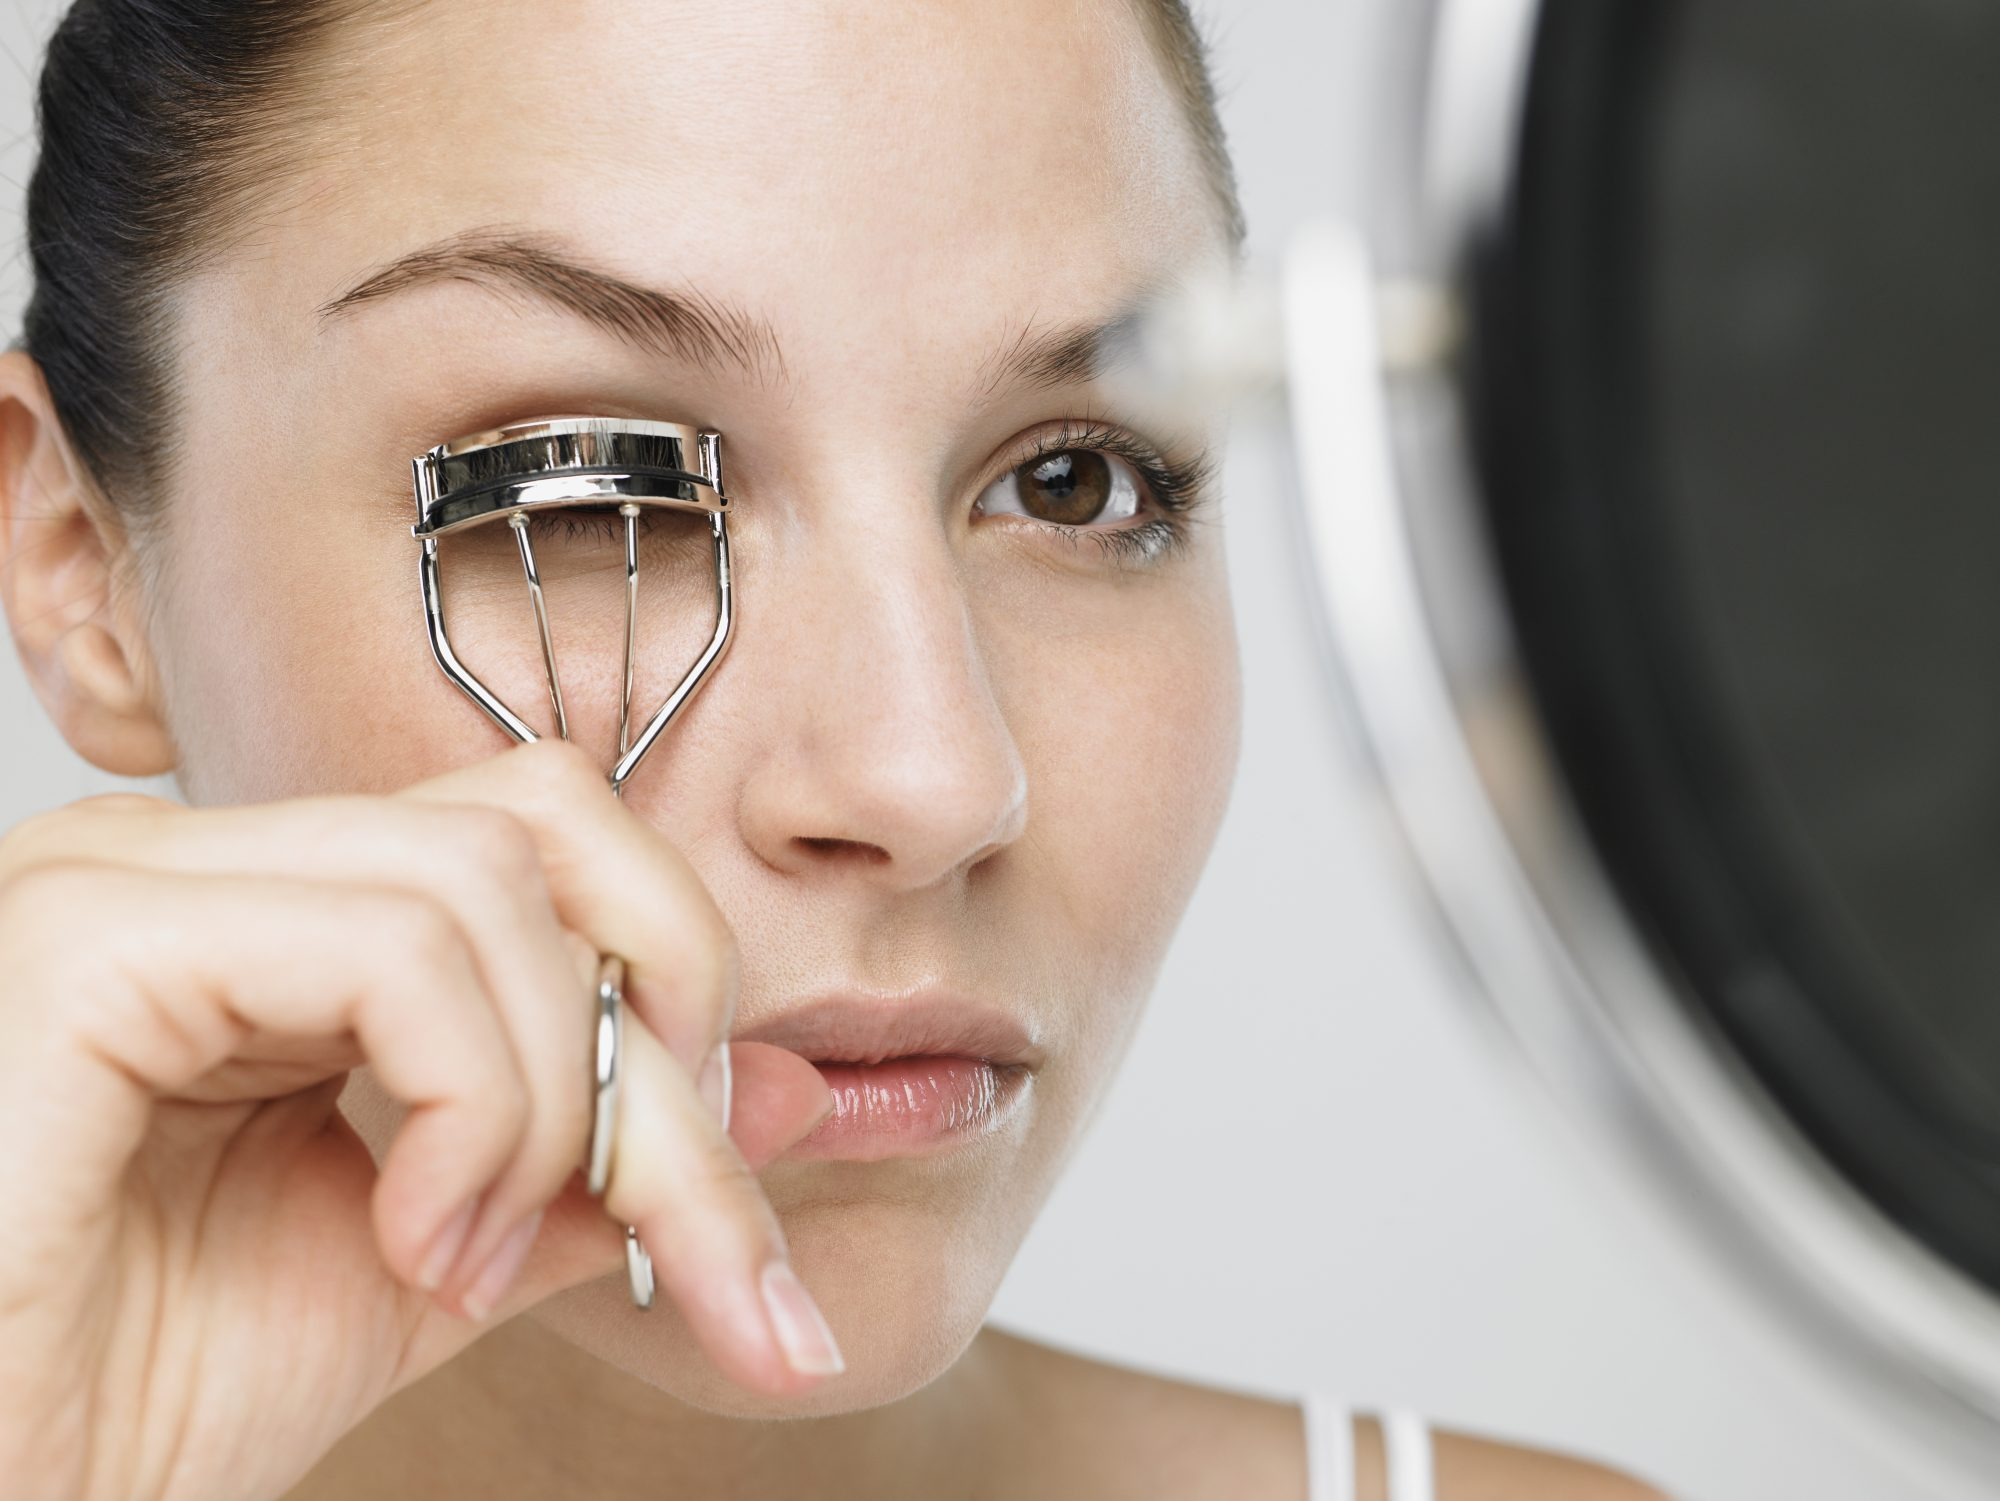 how to use eyelash curler. this is how to use an eyelash curler the right way